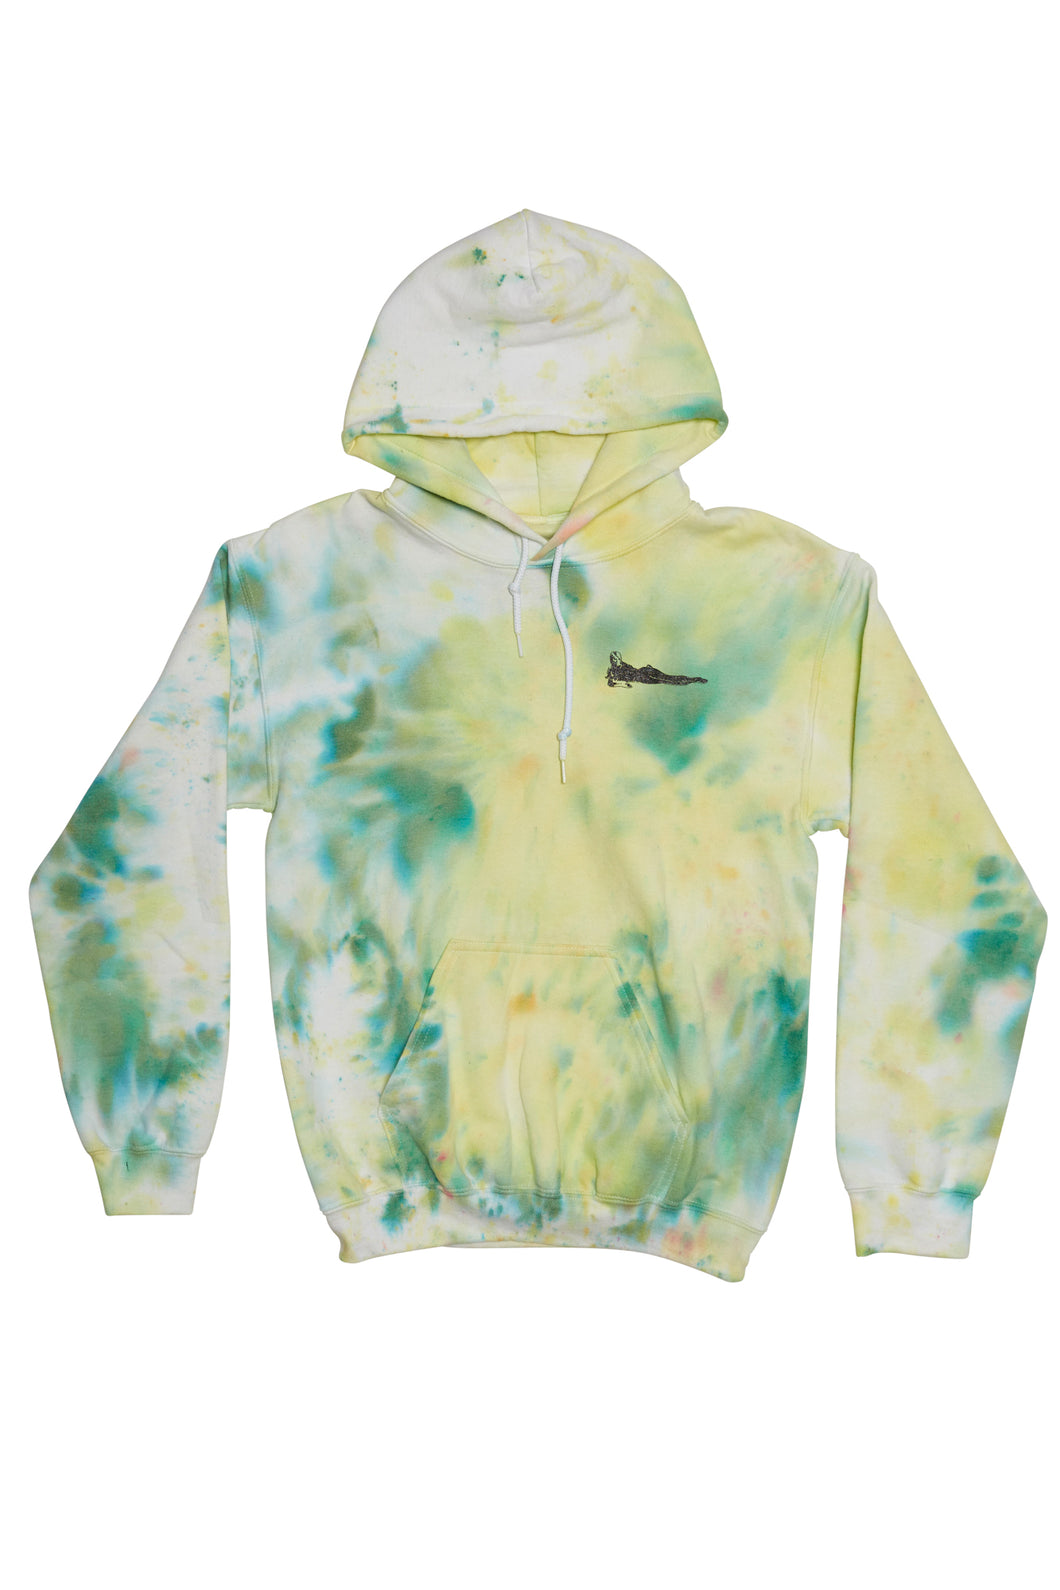 Hand Dyed Hooded Sweater Small